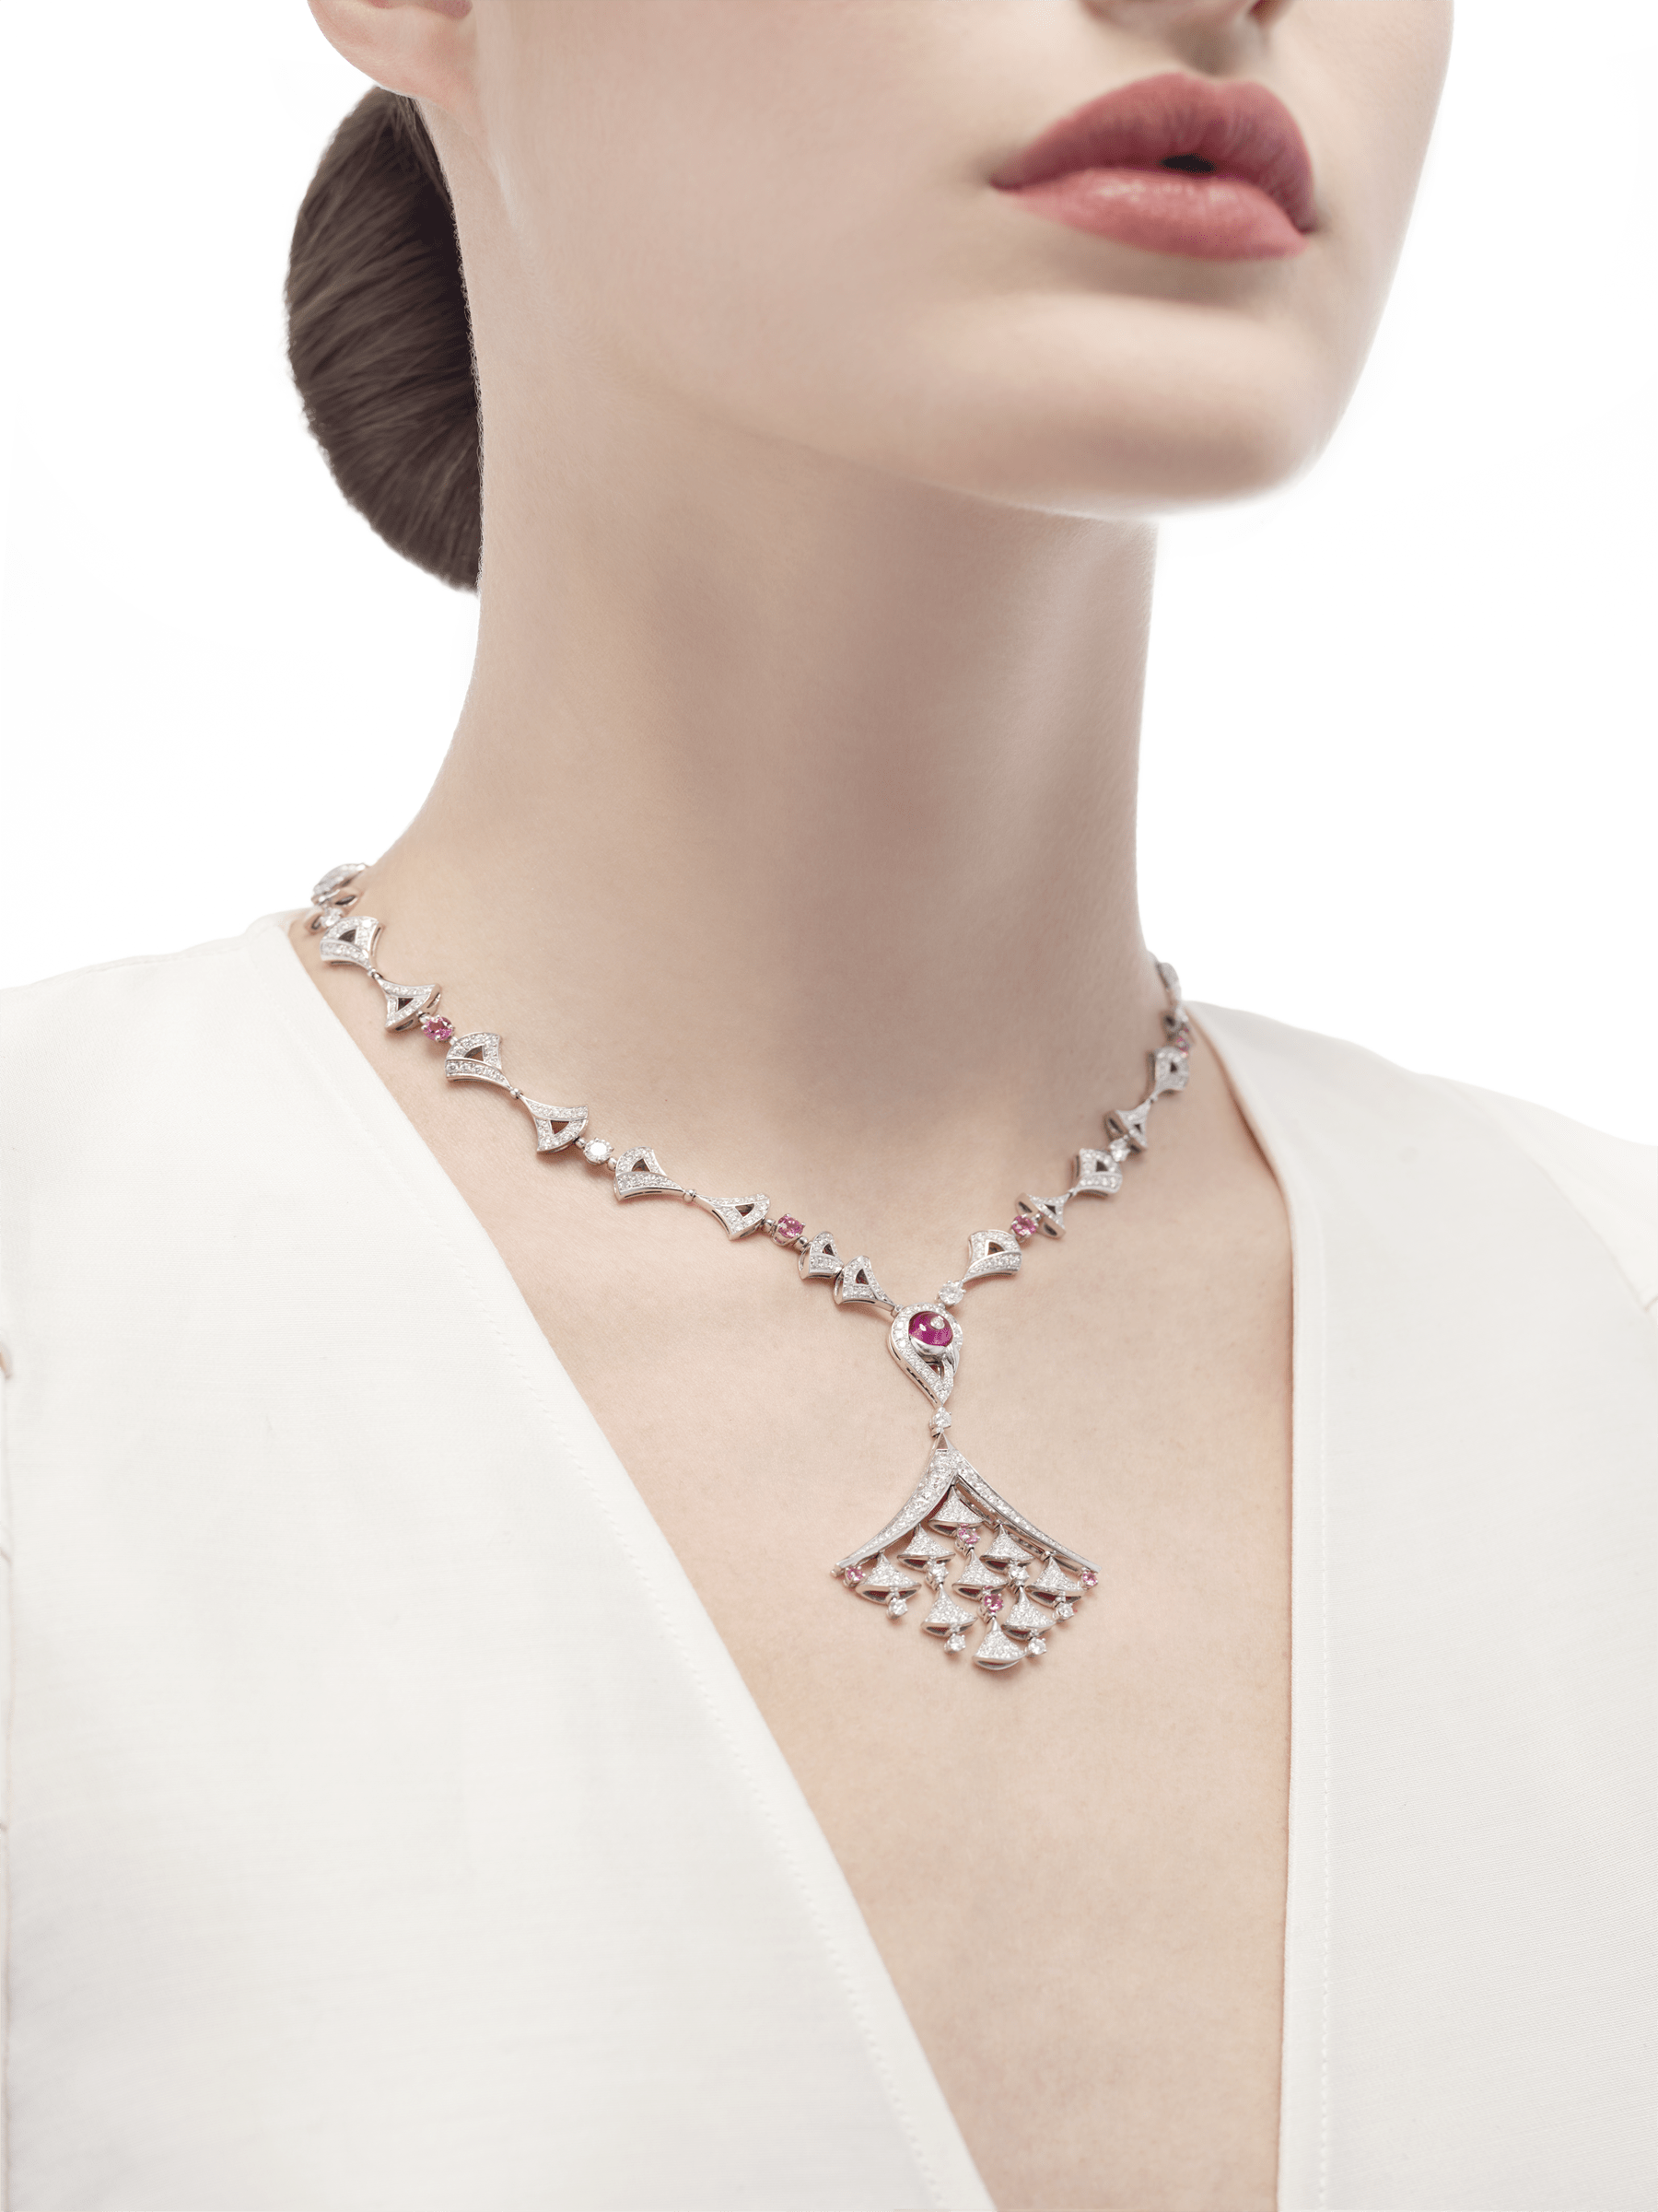 DIVAS' DREAM necklace in 18 kt white gold, set with pavé diamonds and pink rubellite. 354080 image 2